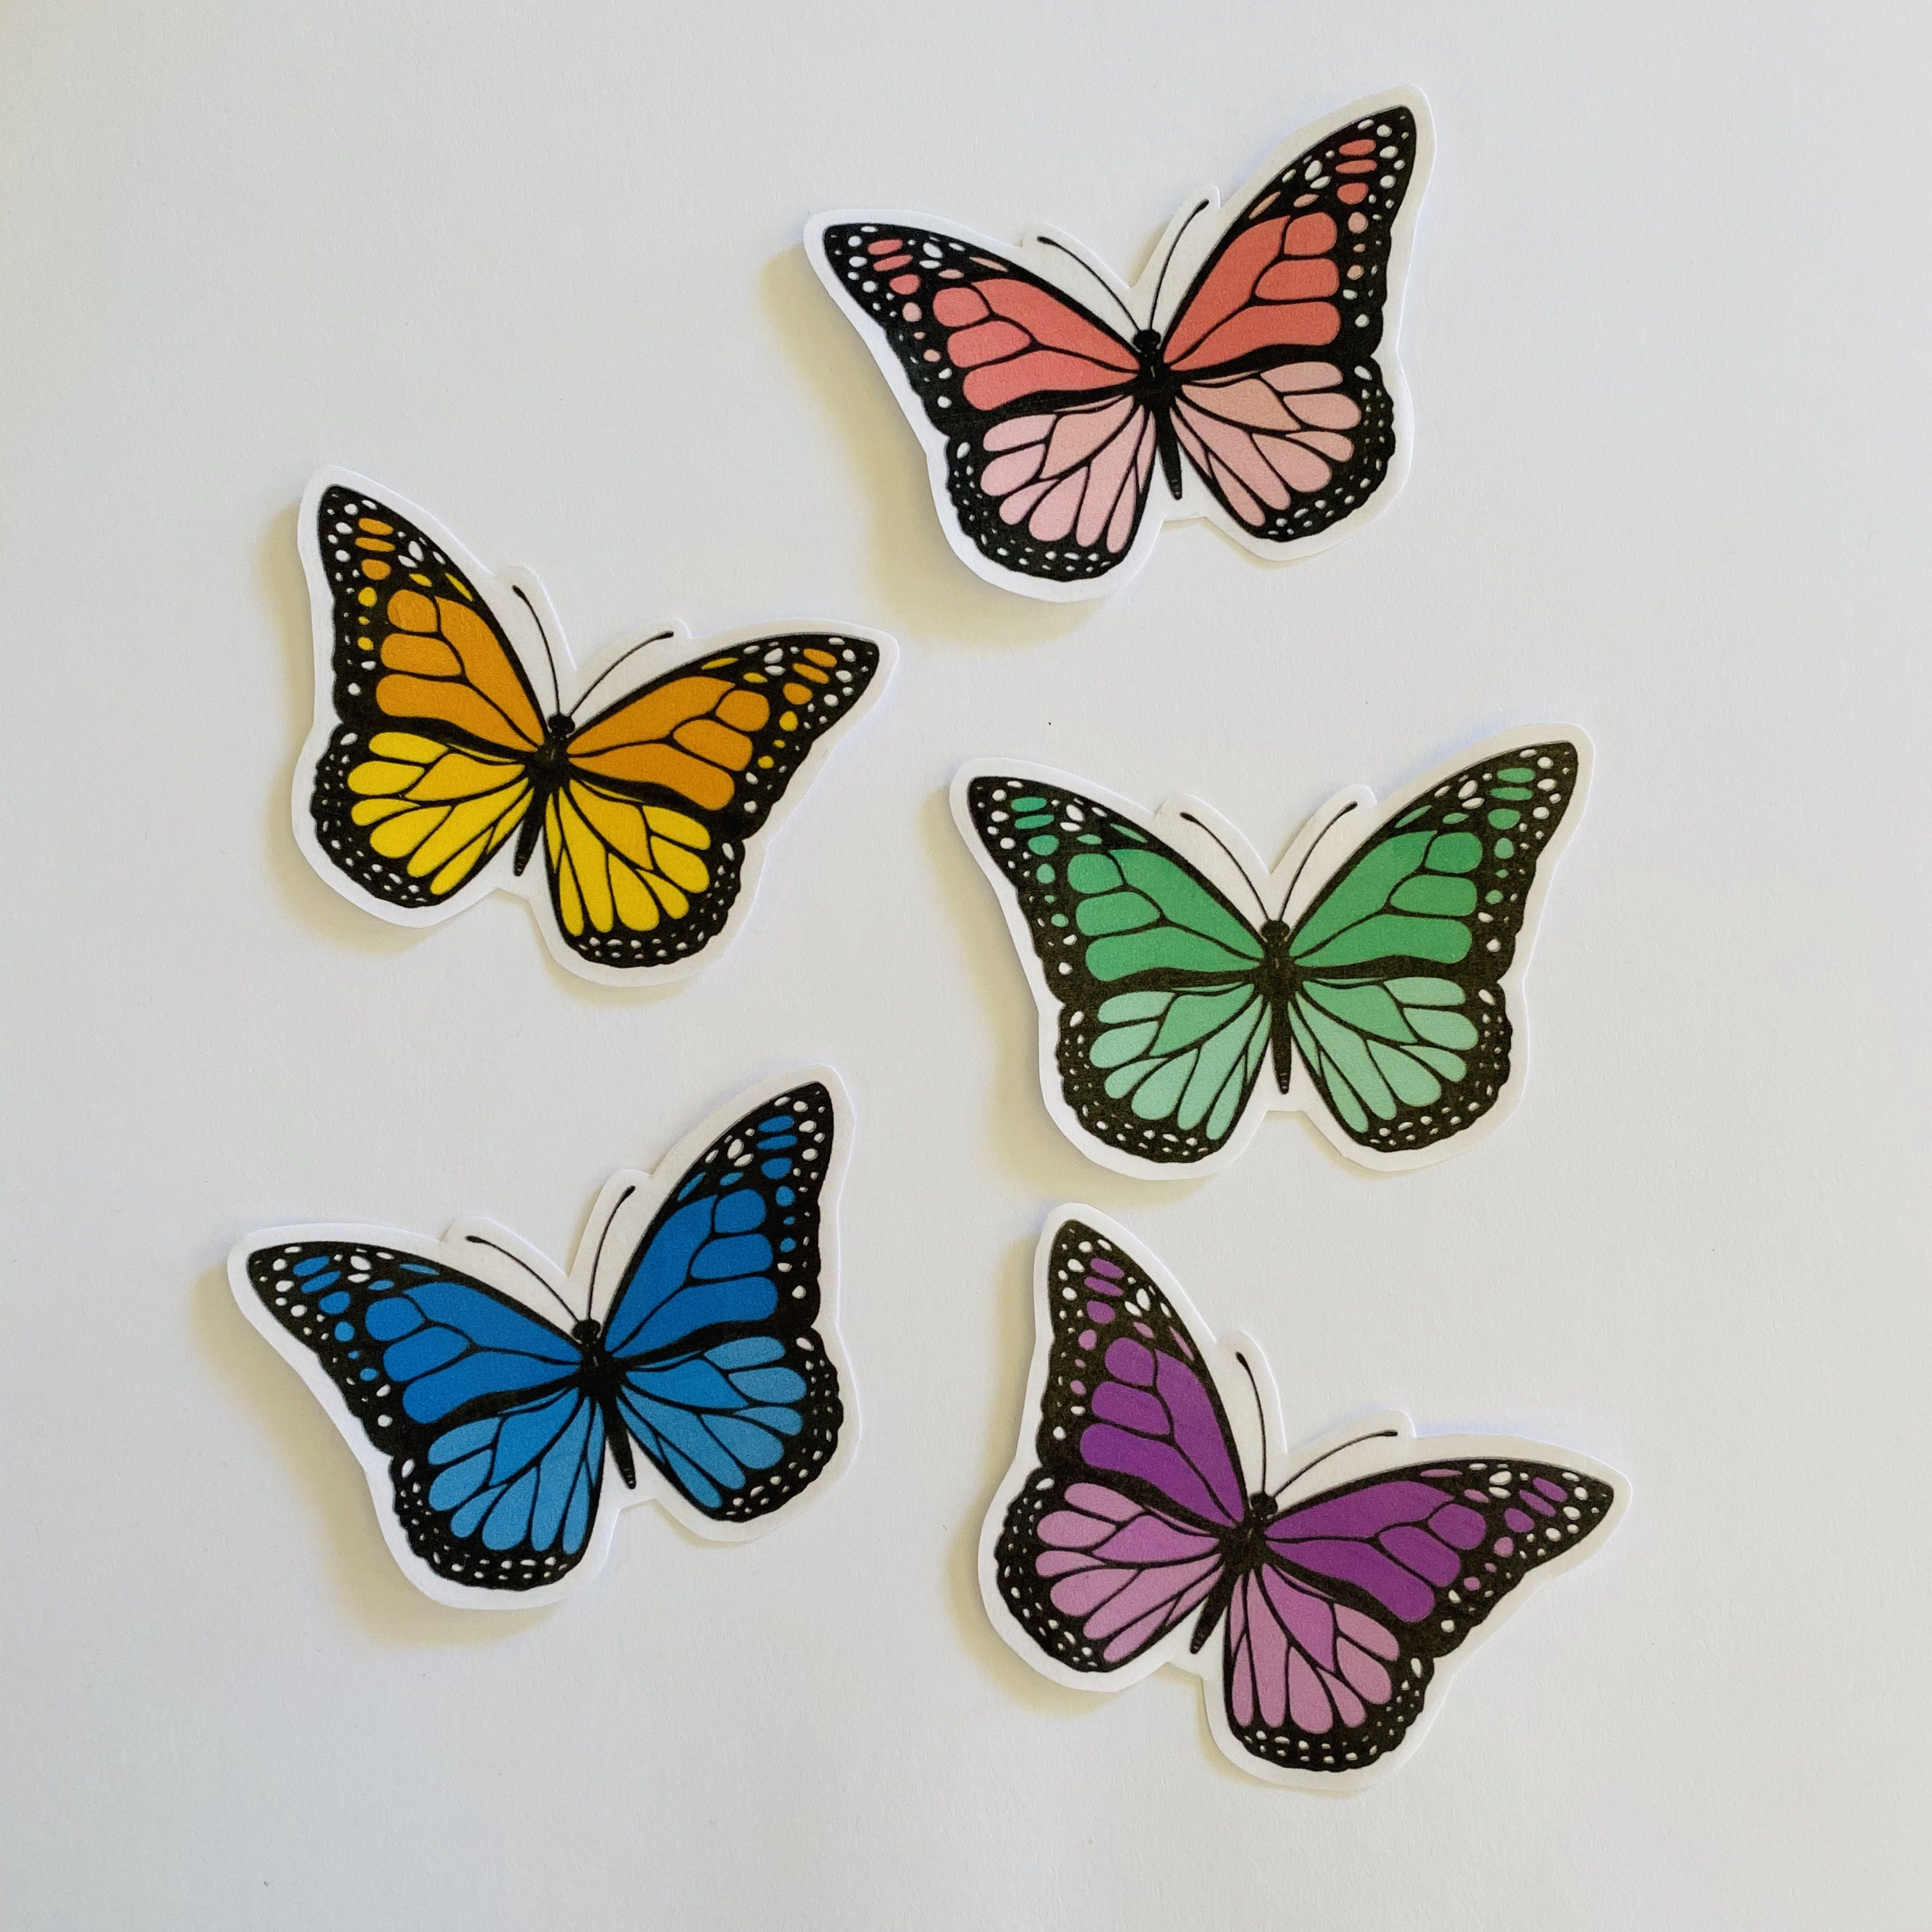 bf3331c8f1dd4dcea0e2c09aec80f806 » Butterfly Drawing Aesthetic